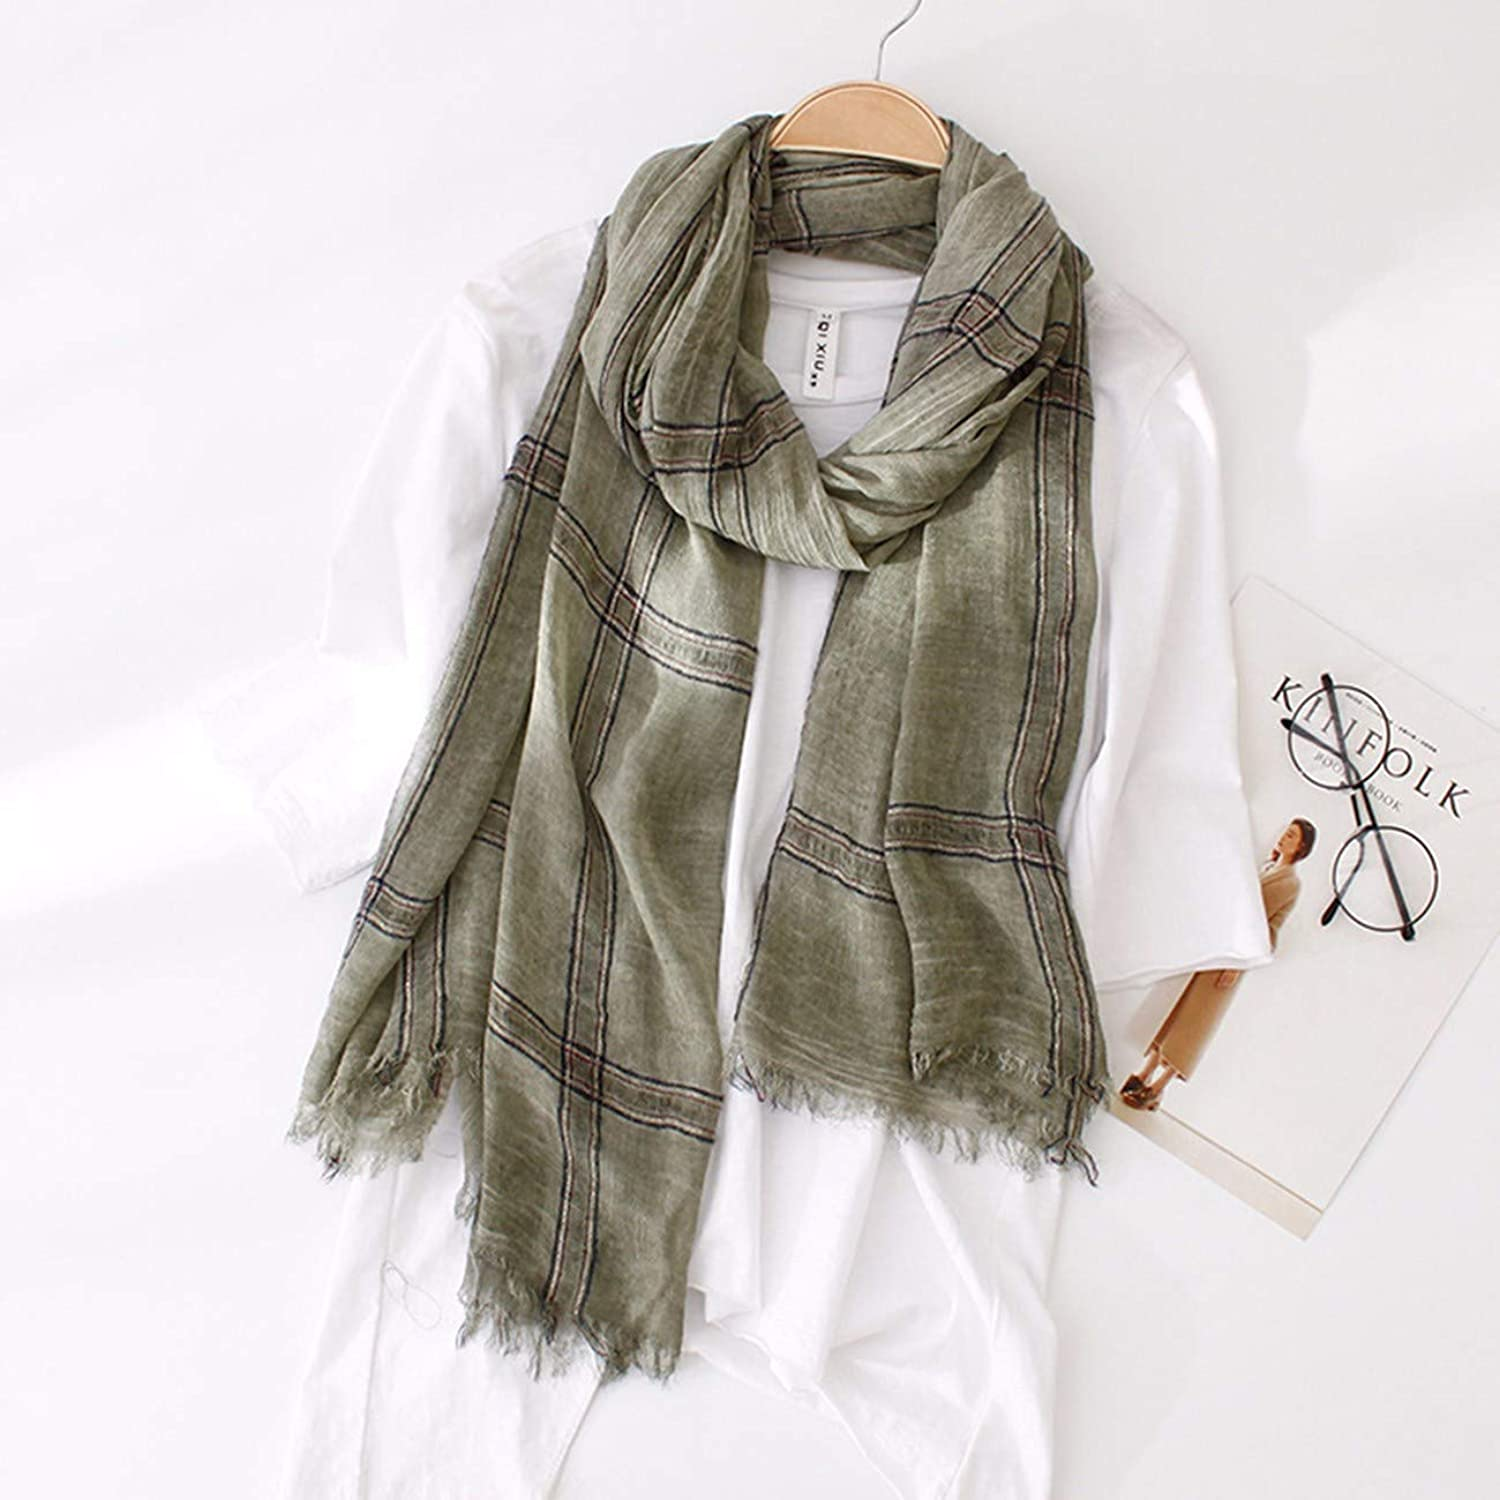 Cotton Scarf, Scarf and Scarf Student